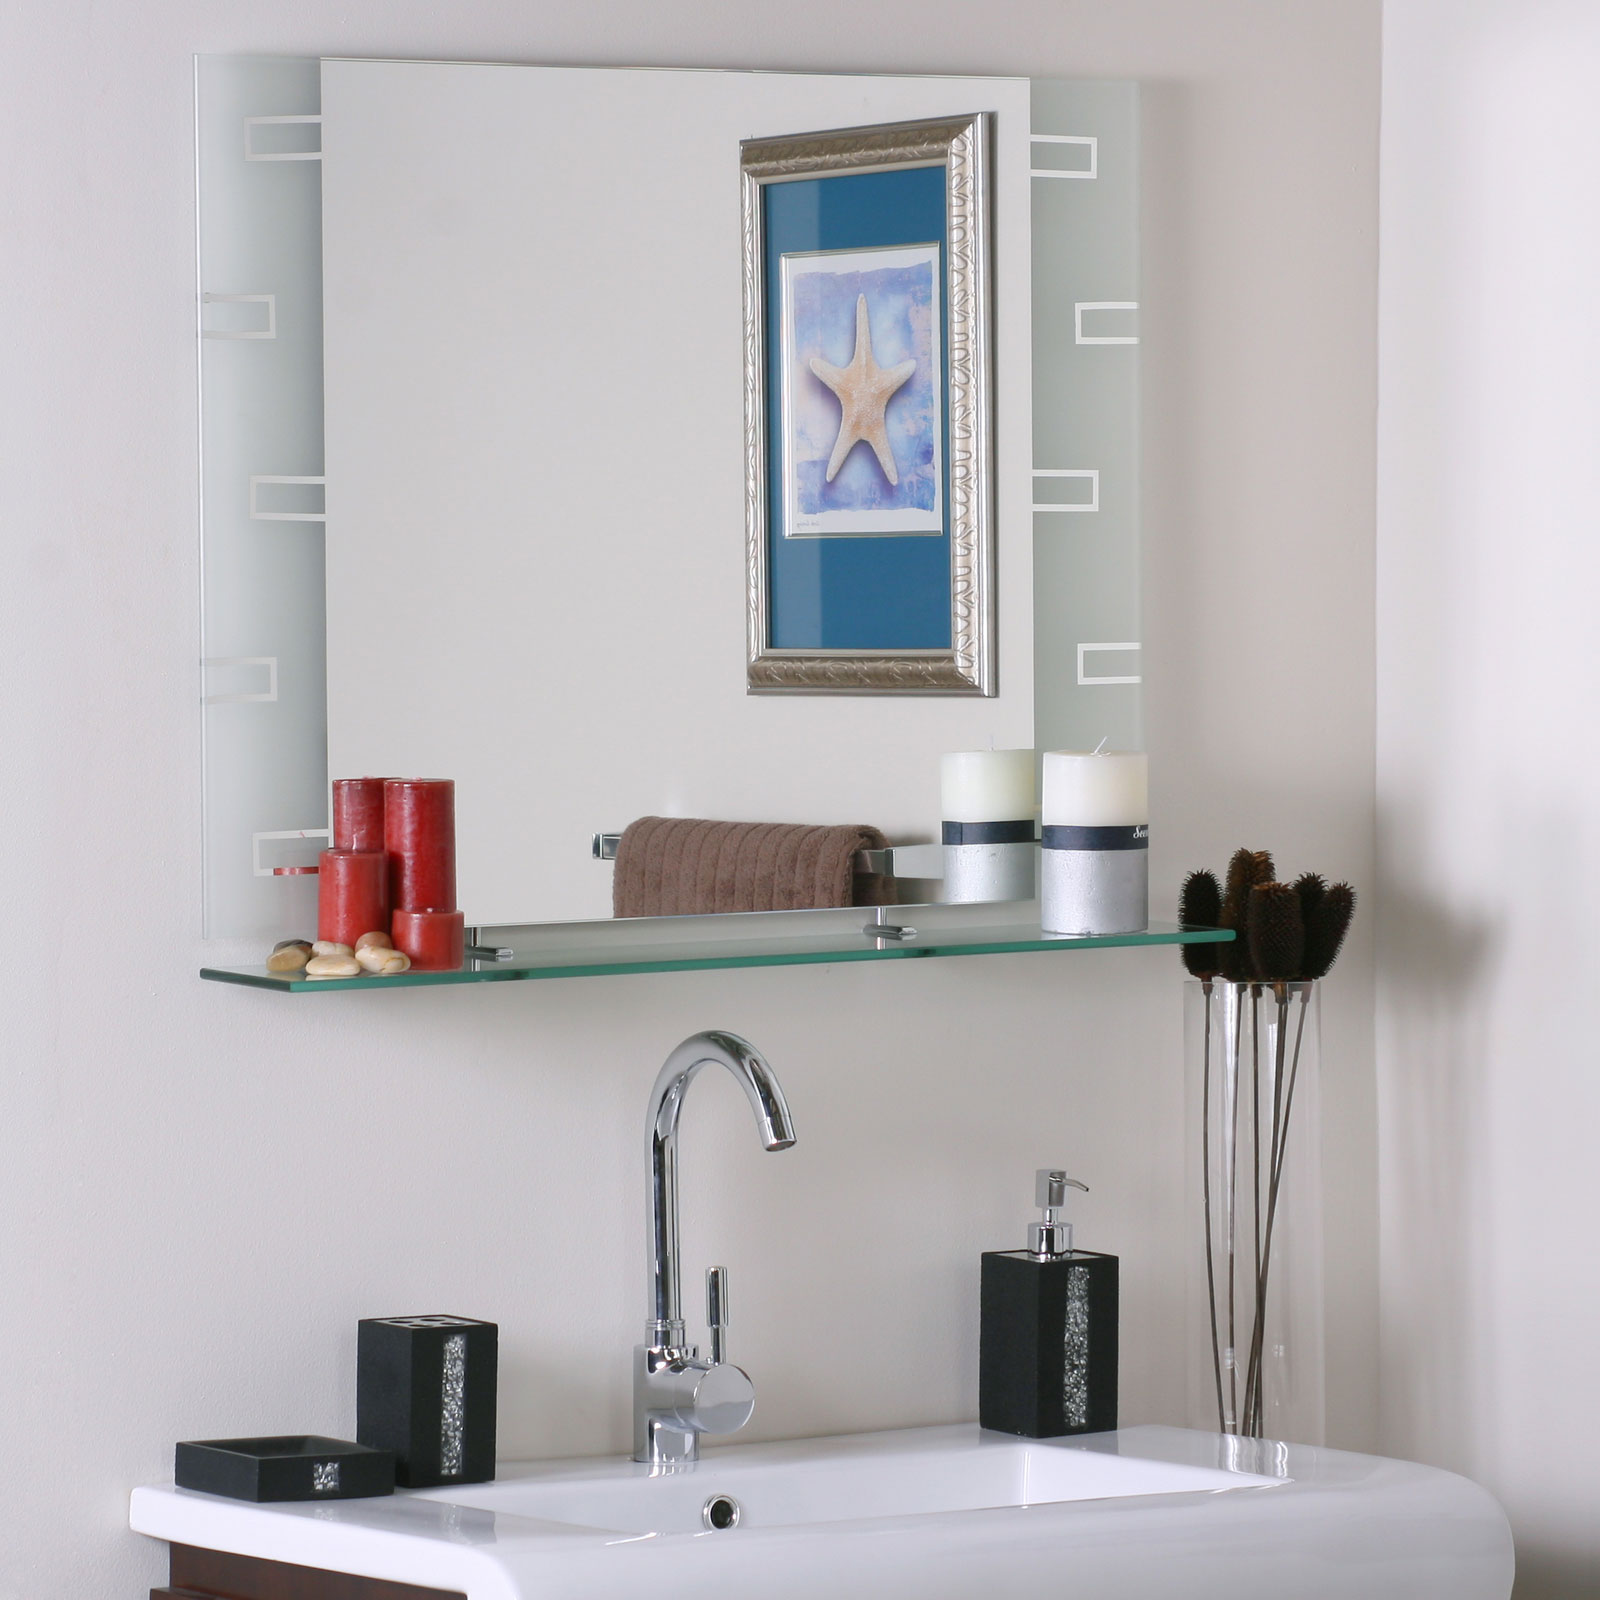 Frameless Contemporary Bathroom Mirror With Shelf Price: $208.99